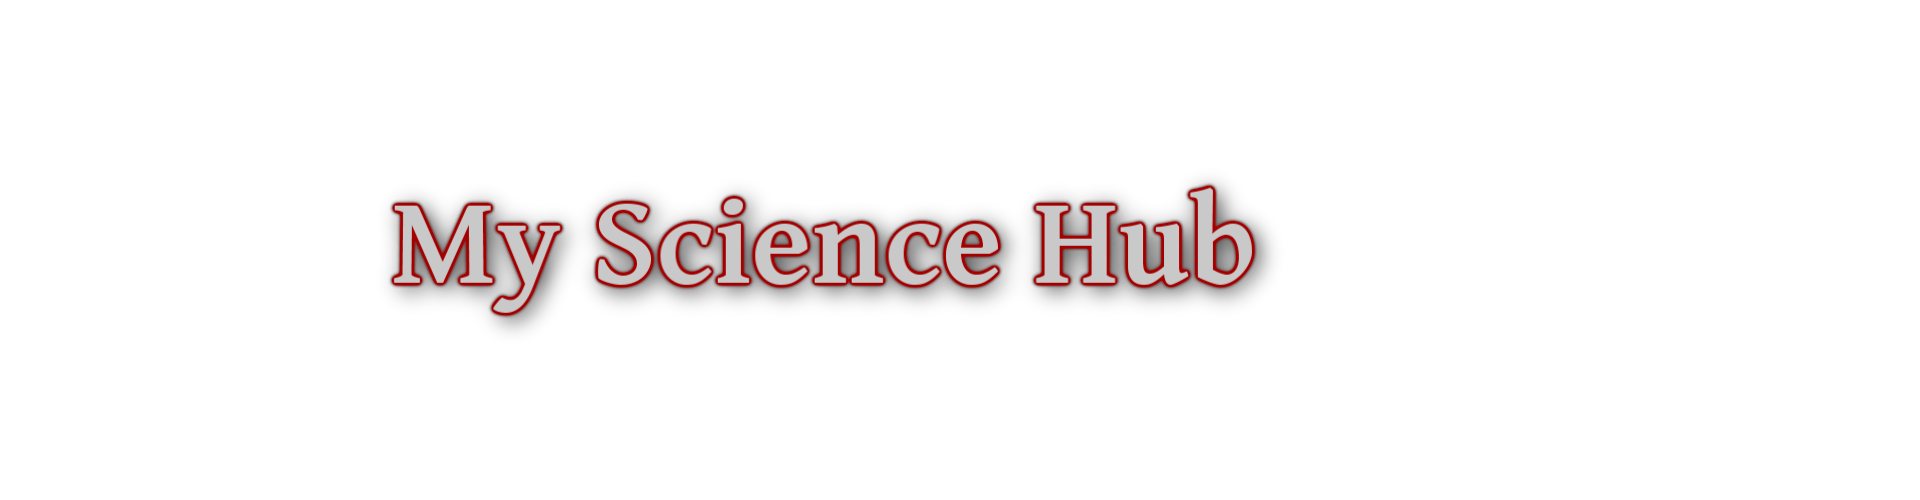 My Science Hub Font Banner_000000